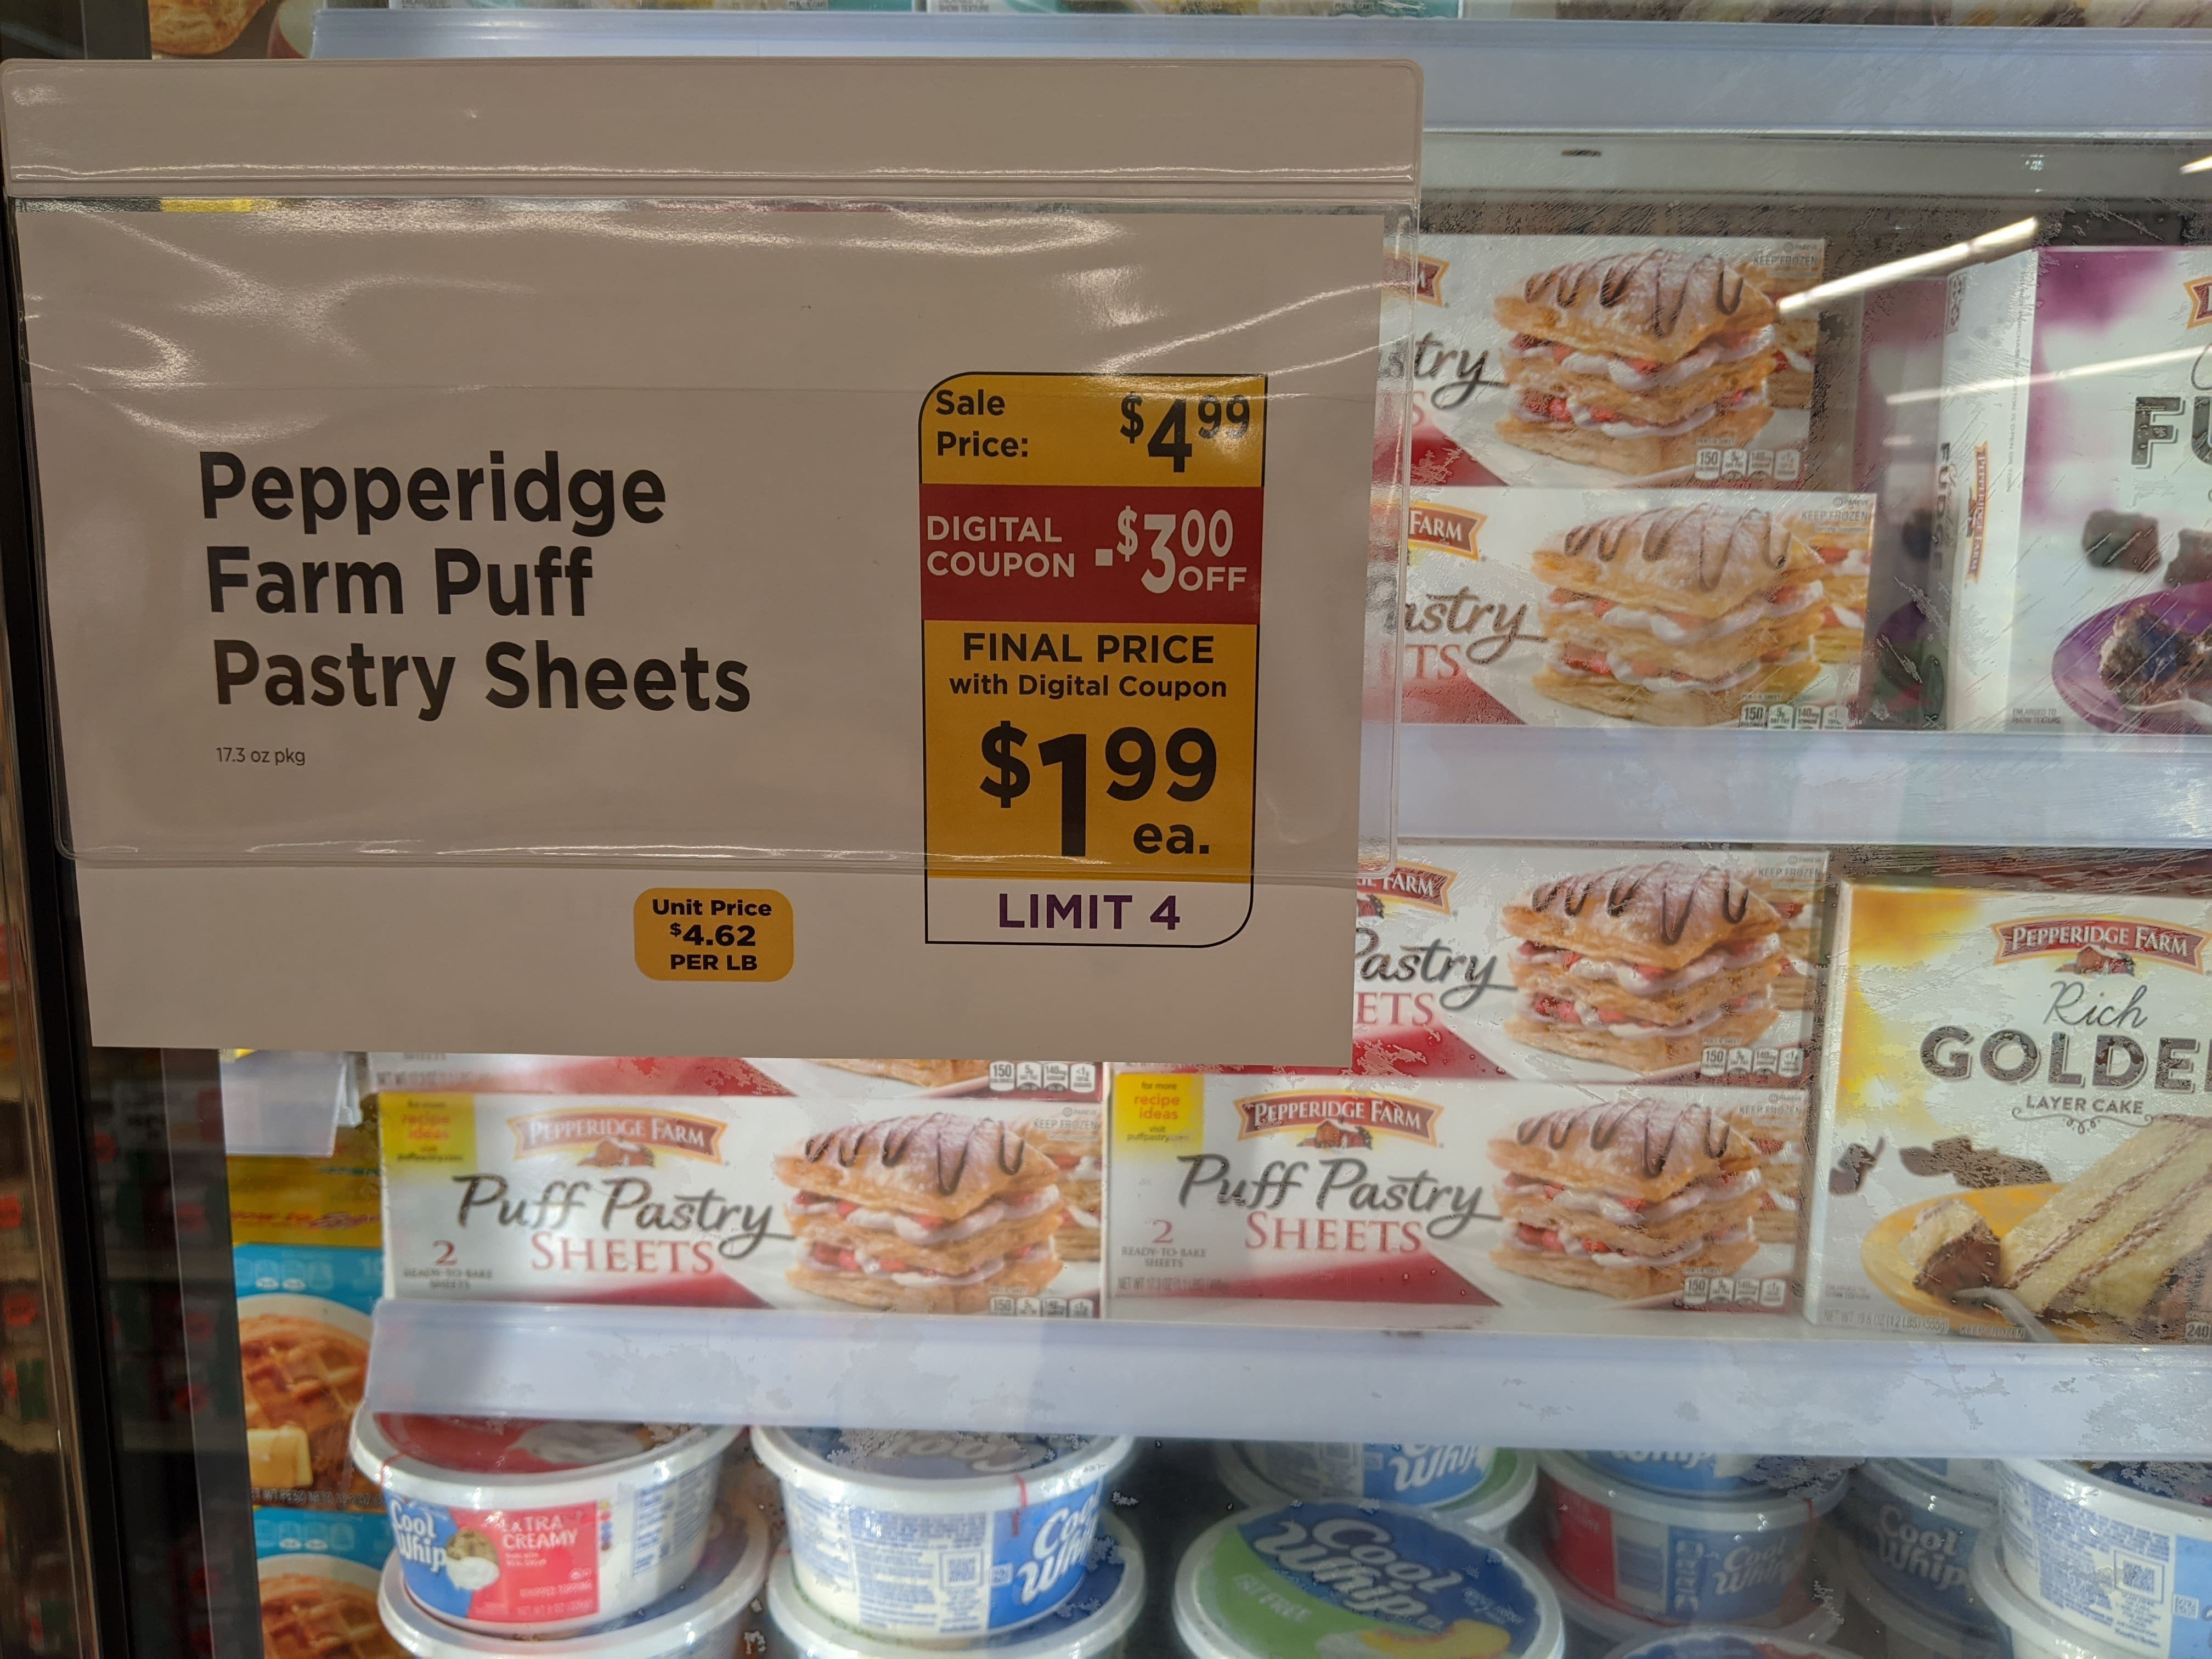 Pepperidge farm frozen Puff pastry sheets for $2 B&M digital coupon $1.99